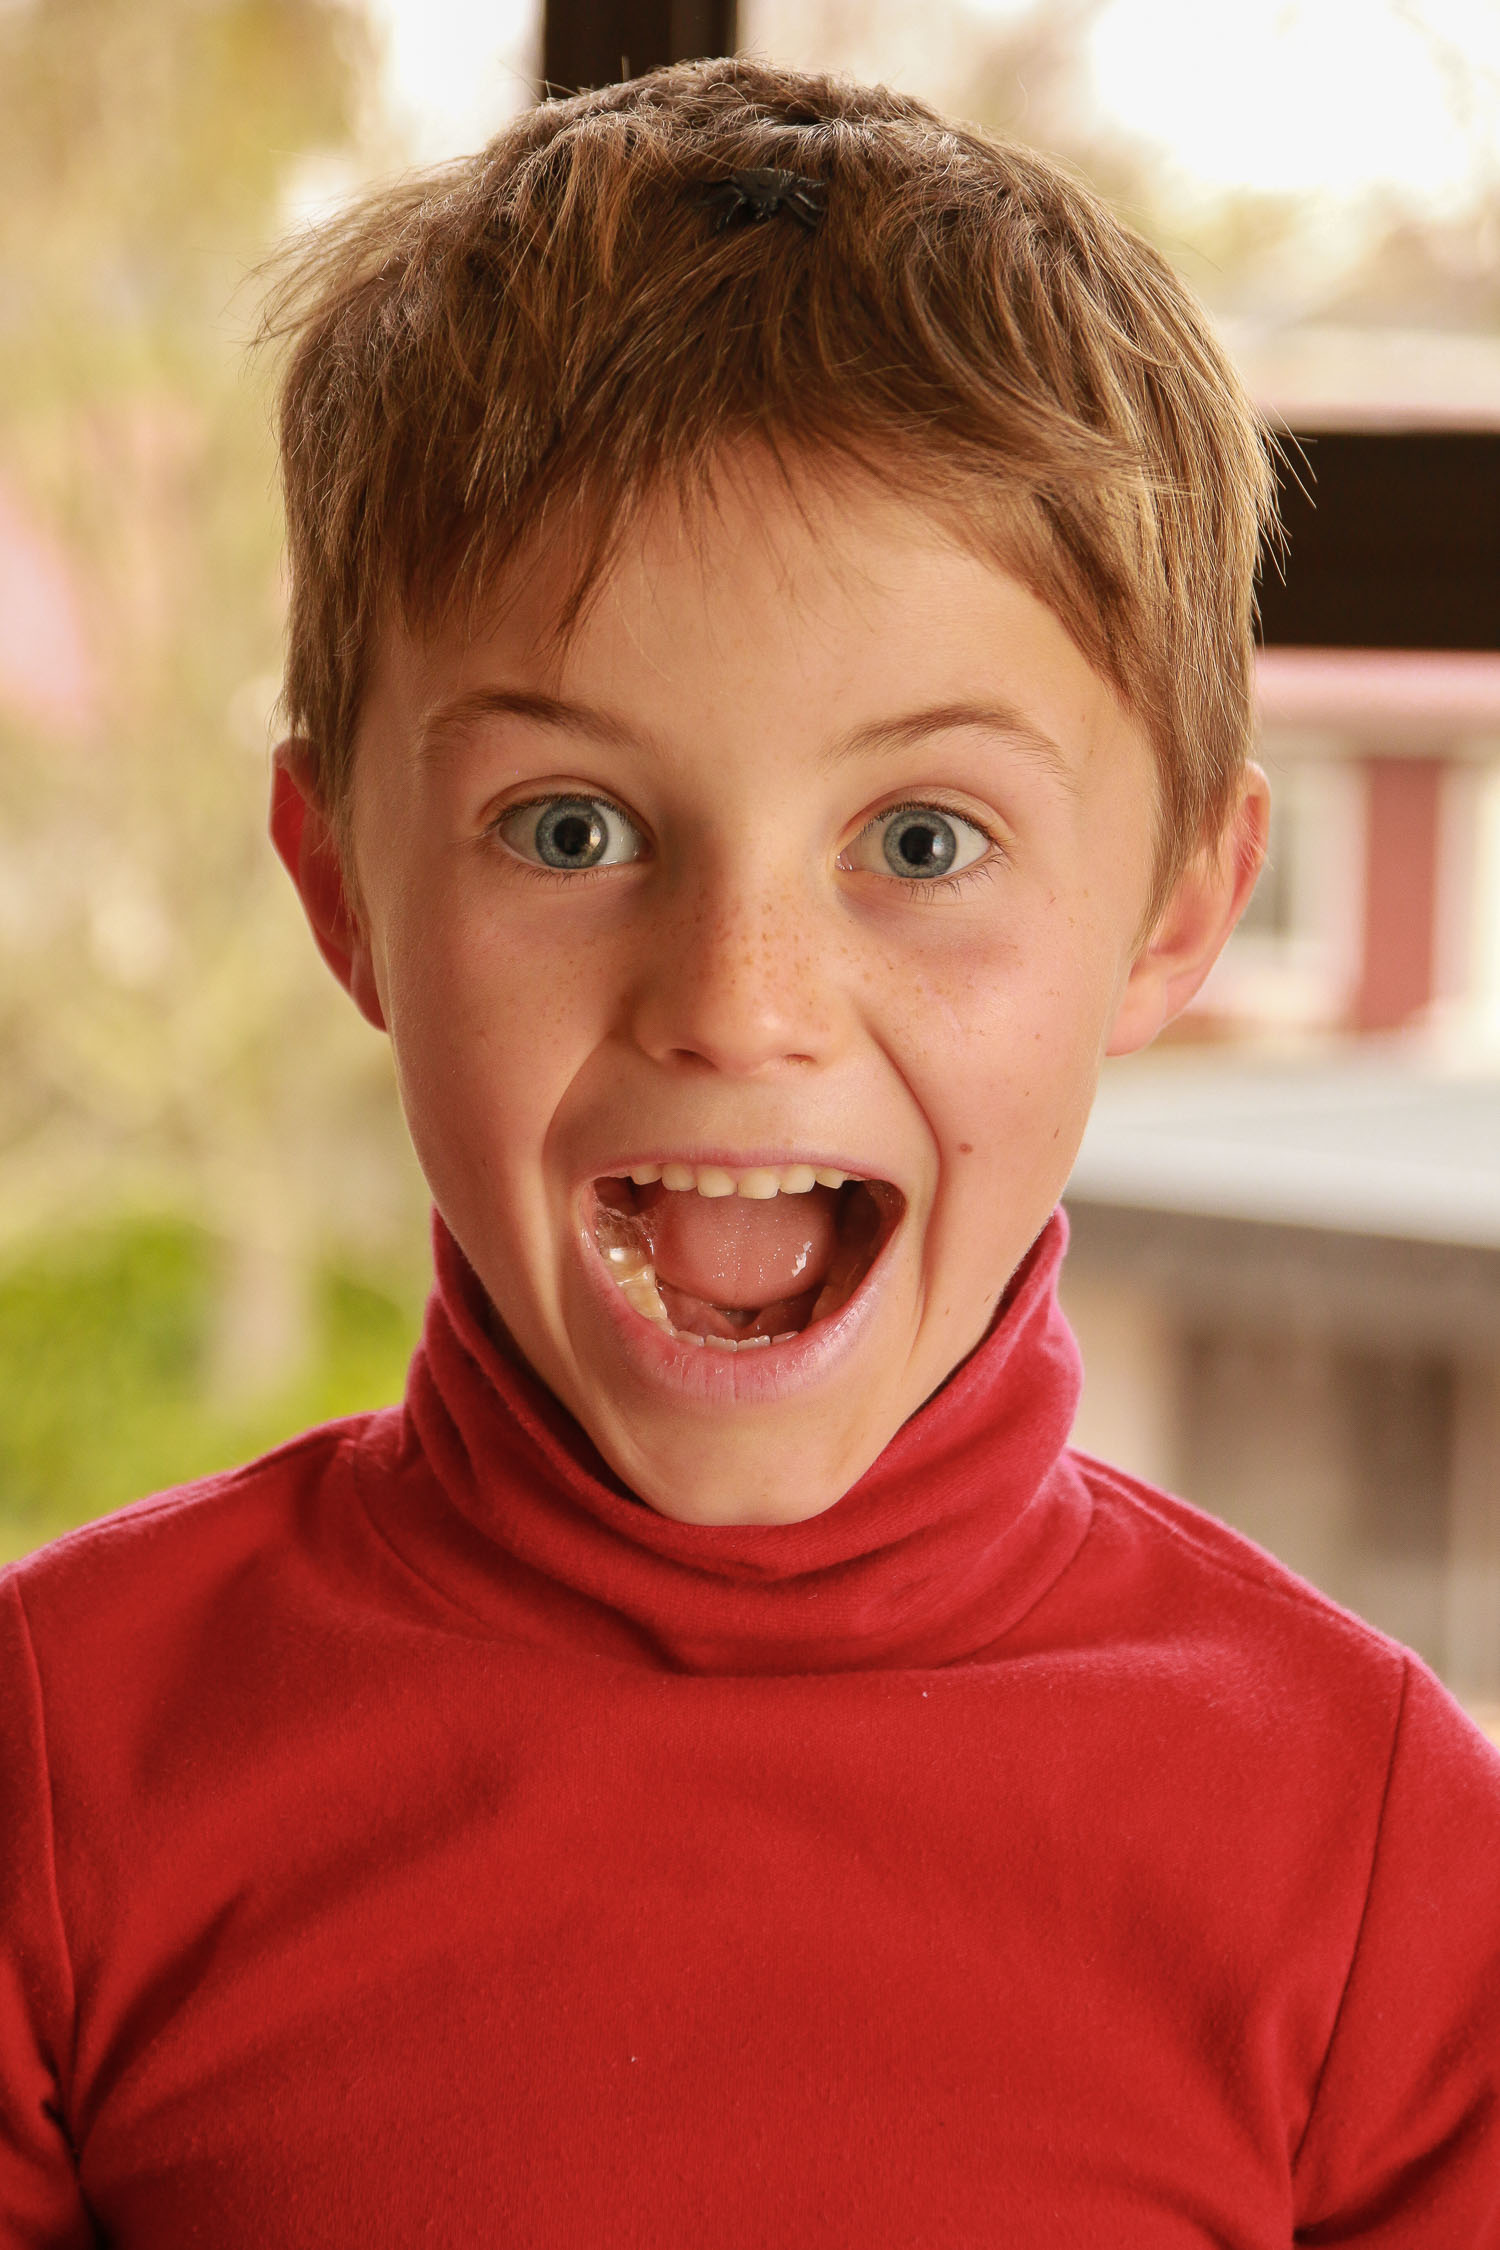 boy-wearing-red-holding-his-head-blue-eyes-mouth-open